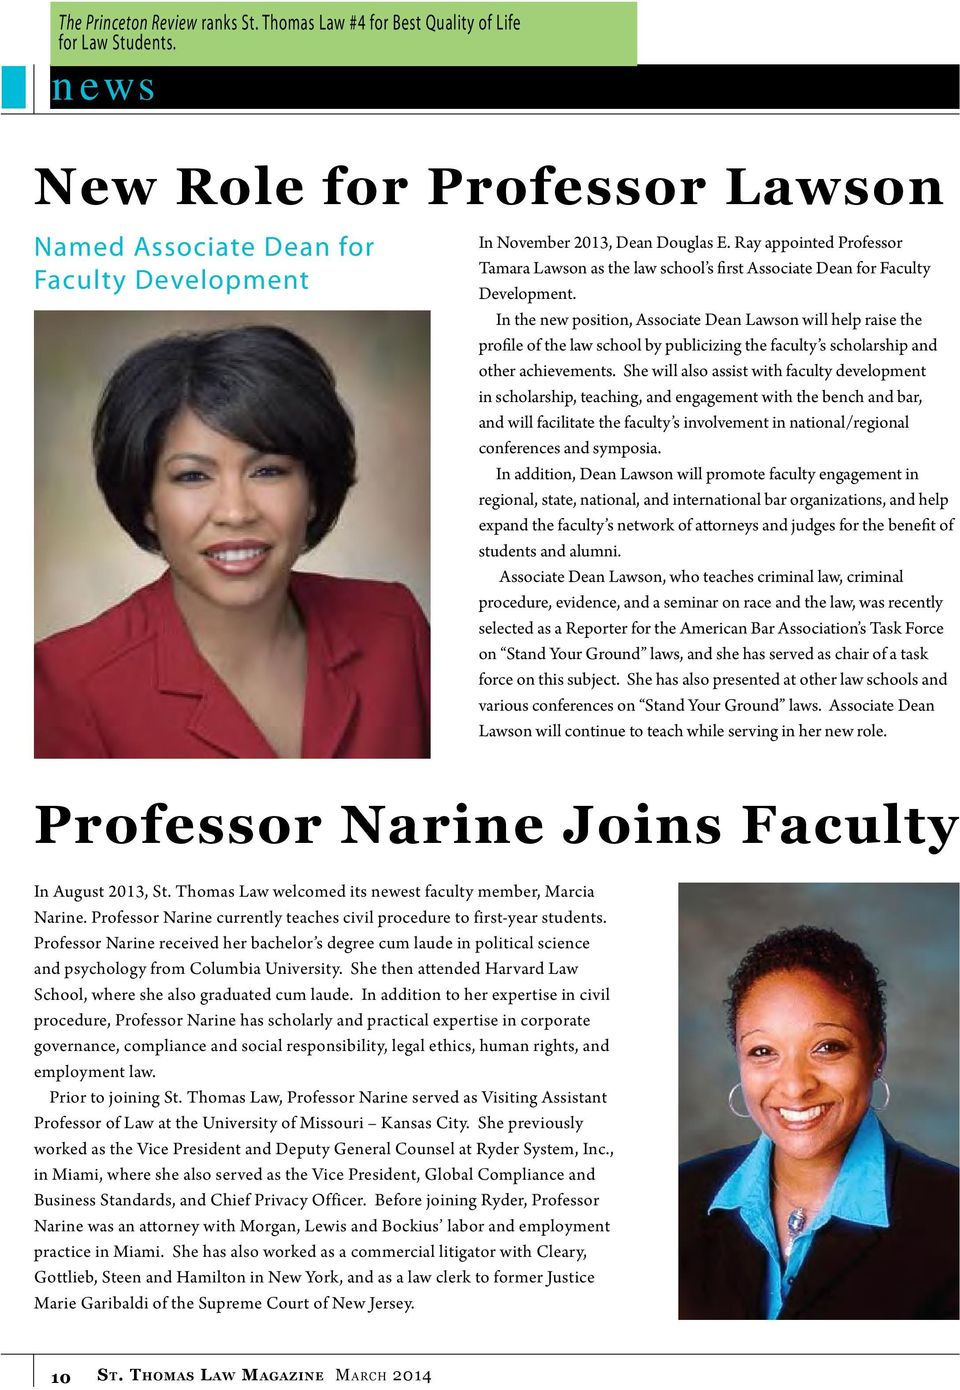 Professor Narine received her bachelor s degree cum laude in political science and psychology from Columbia University. She then attended Harvard Law School, where she also graduated cum laude.